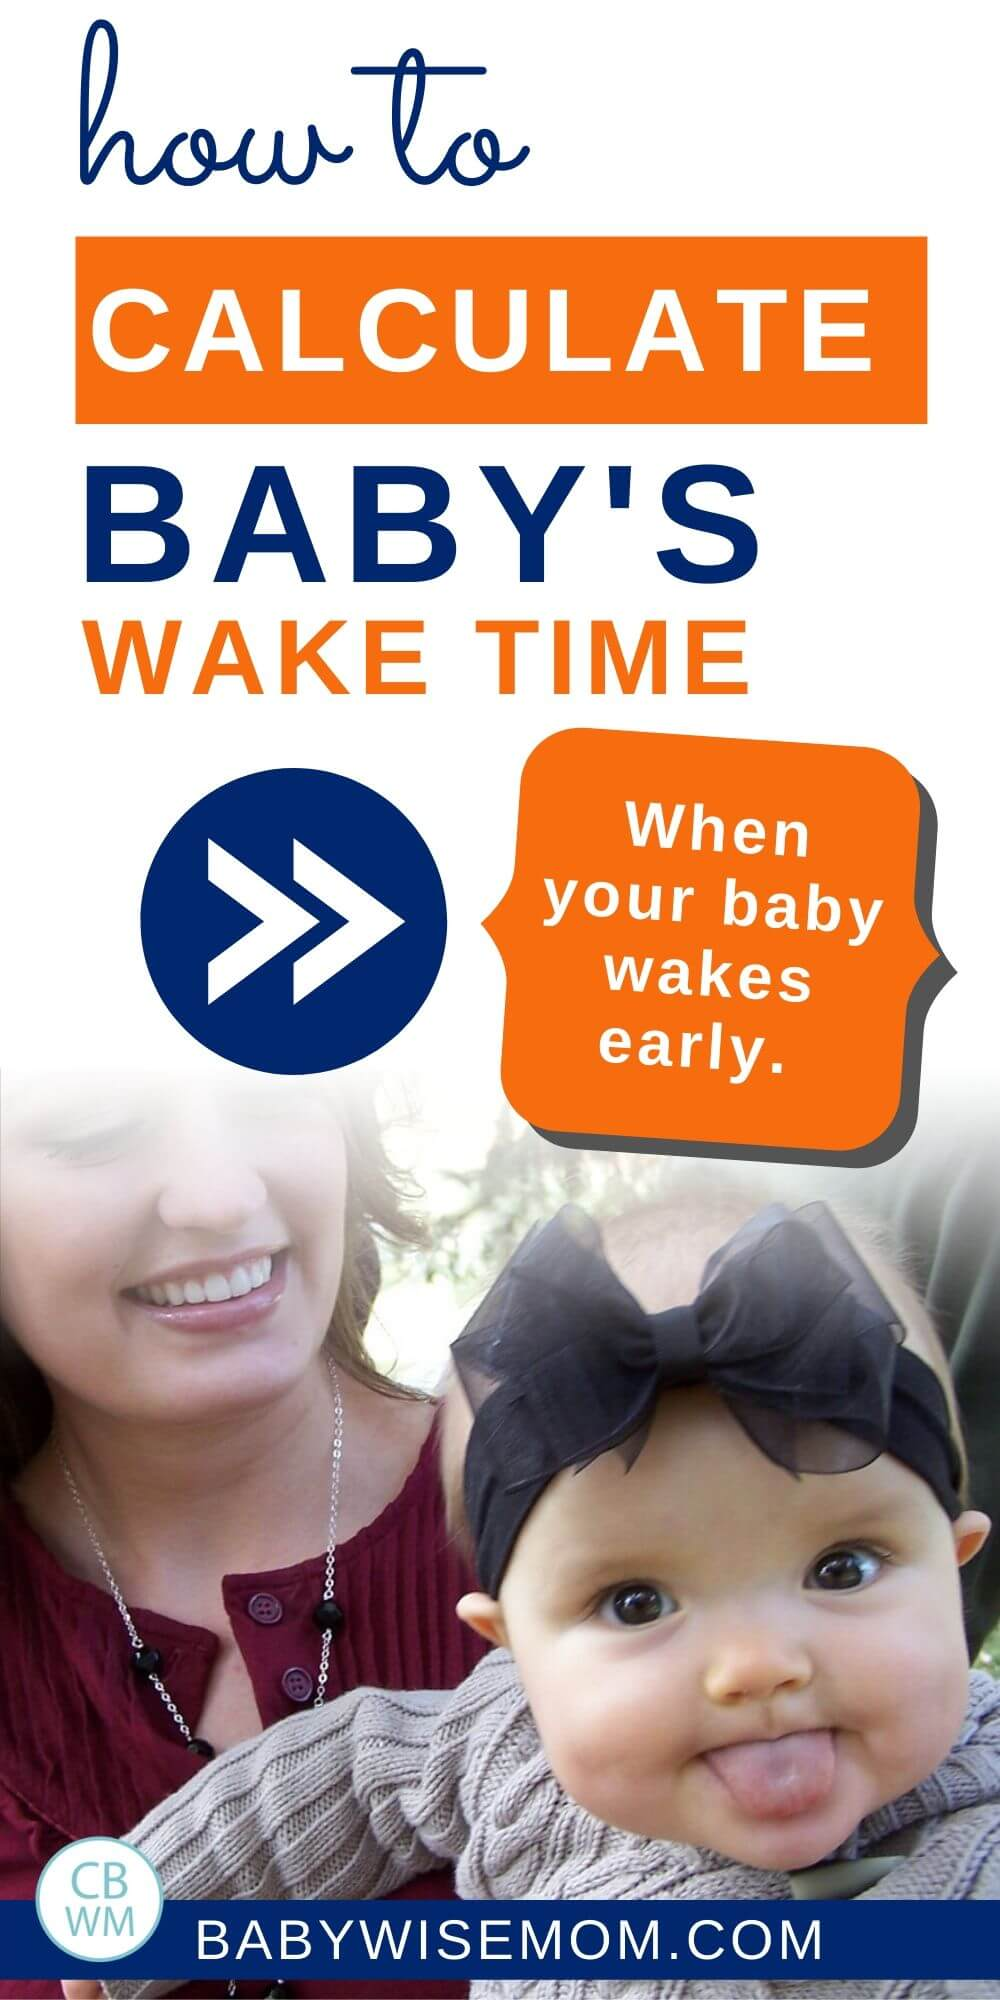 How to calculate baby's wake time when baby wakes early pinnable image